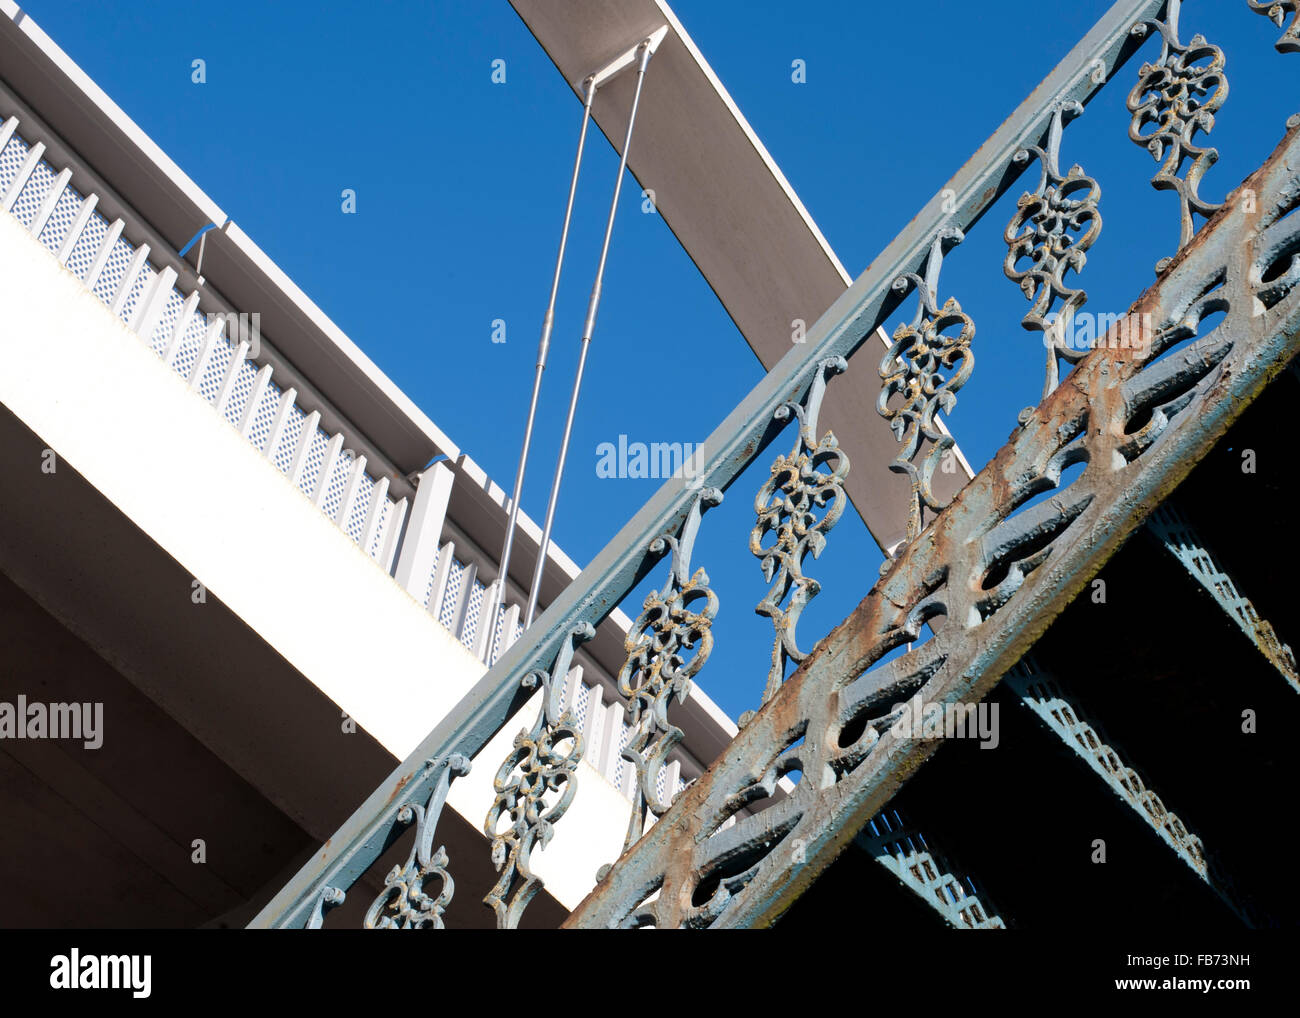 New and old staircases with a blue sky and copy space - Stock Image